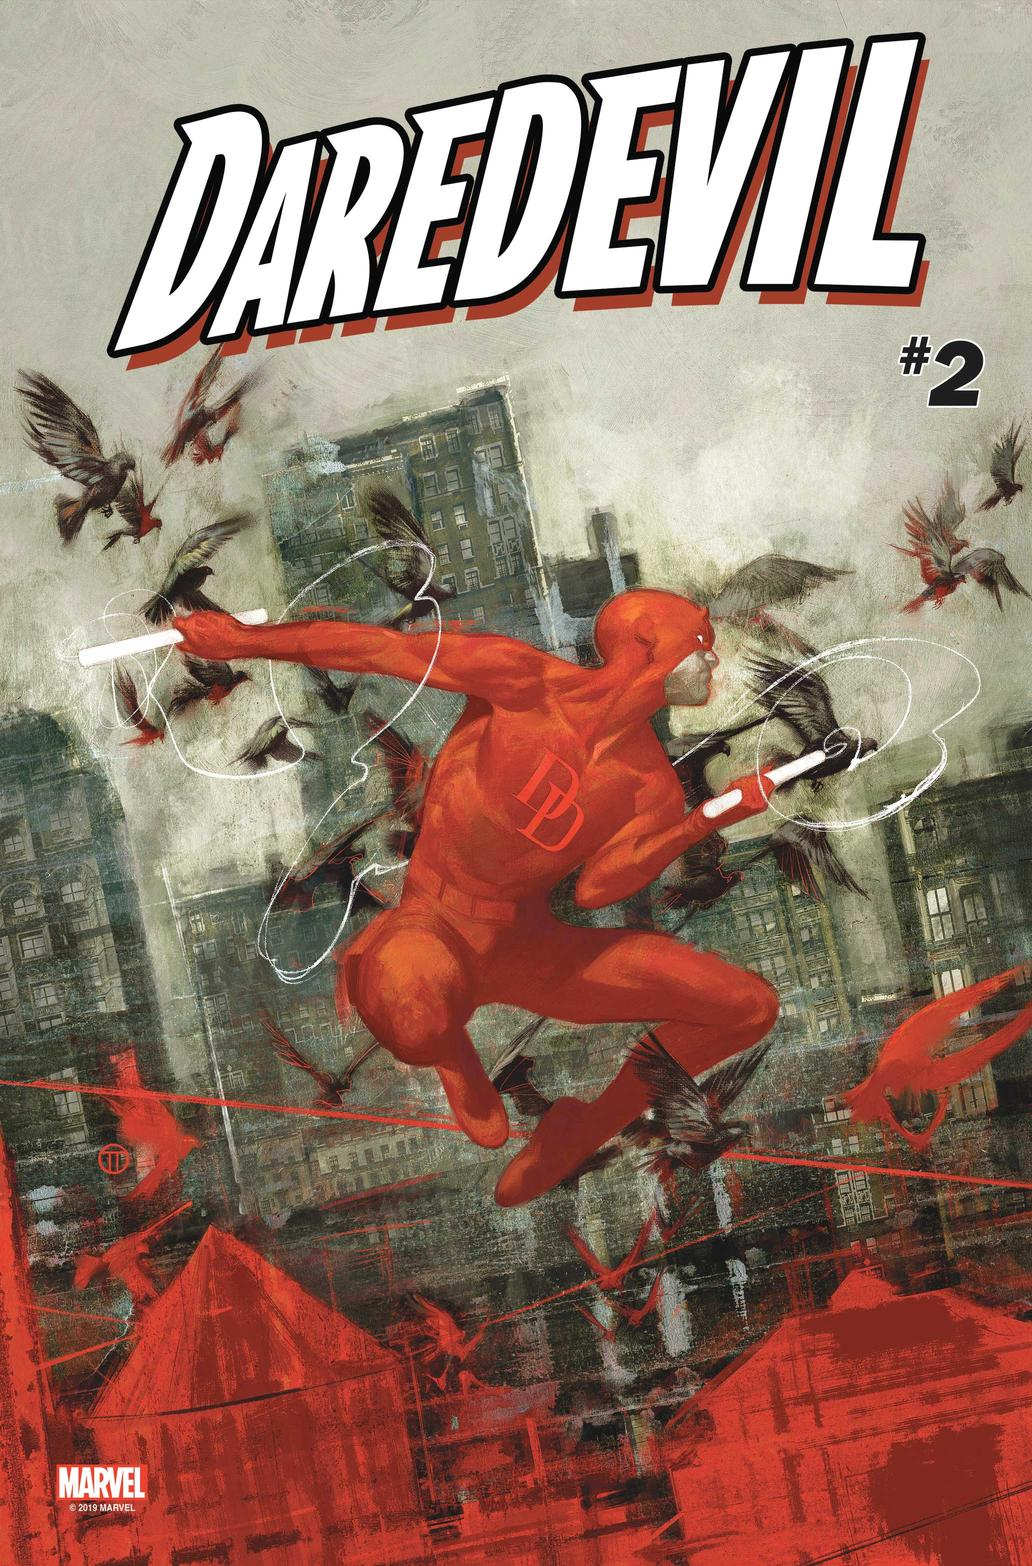 Cover of Daredevil #2